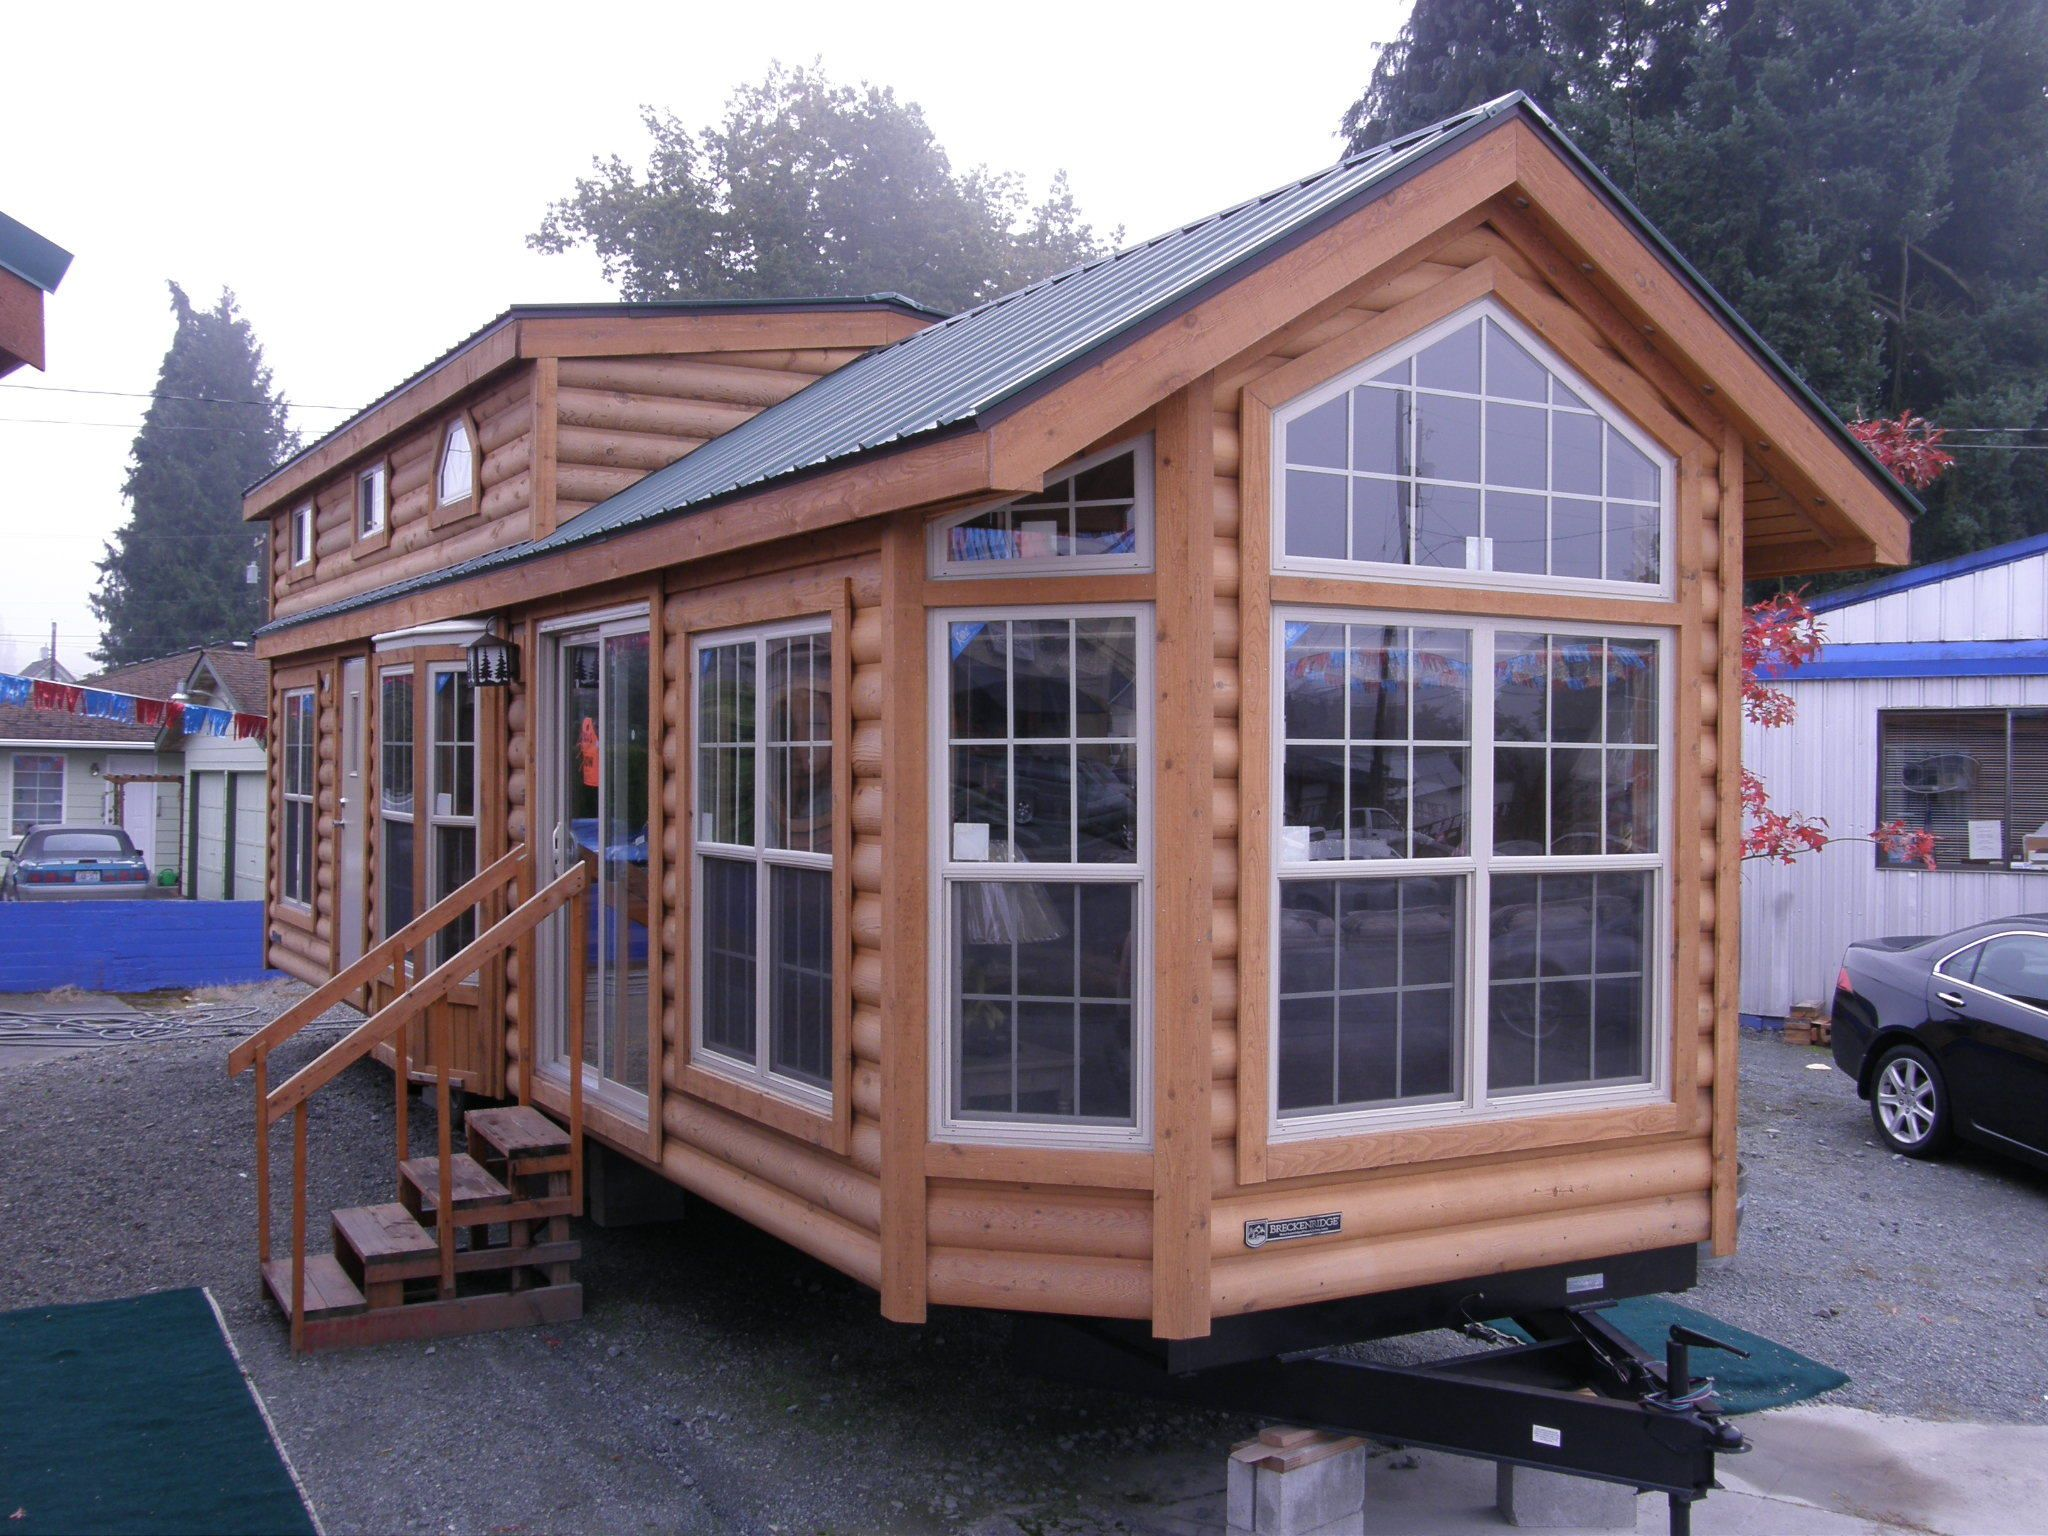 Design Tiny Houses On Wheels house on wheels craigslist visit open big tiny at monroe